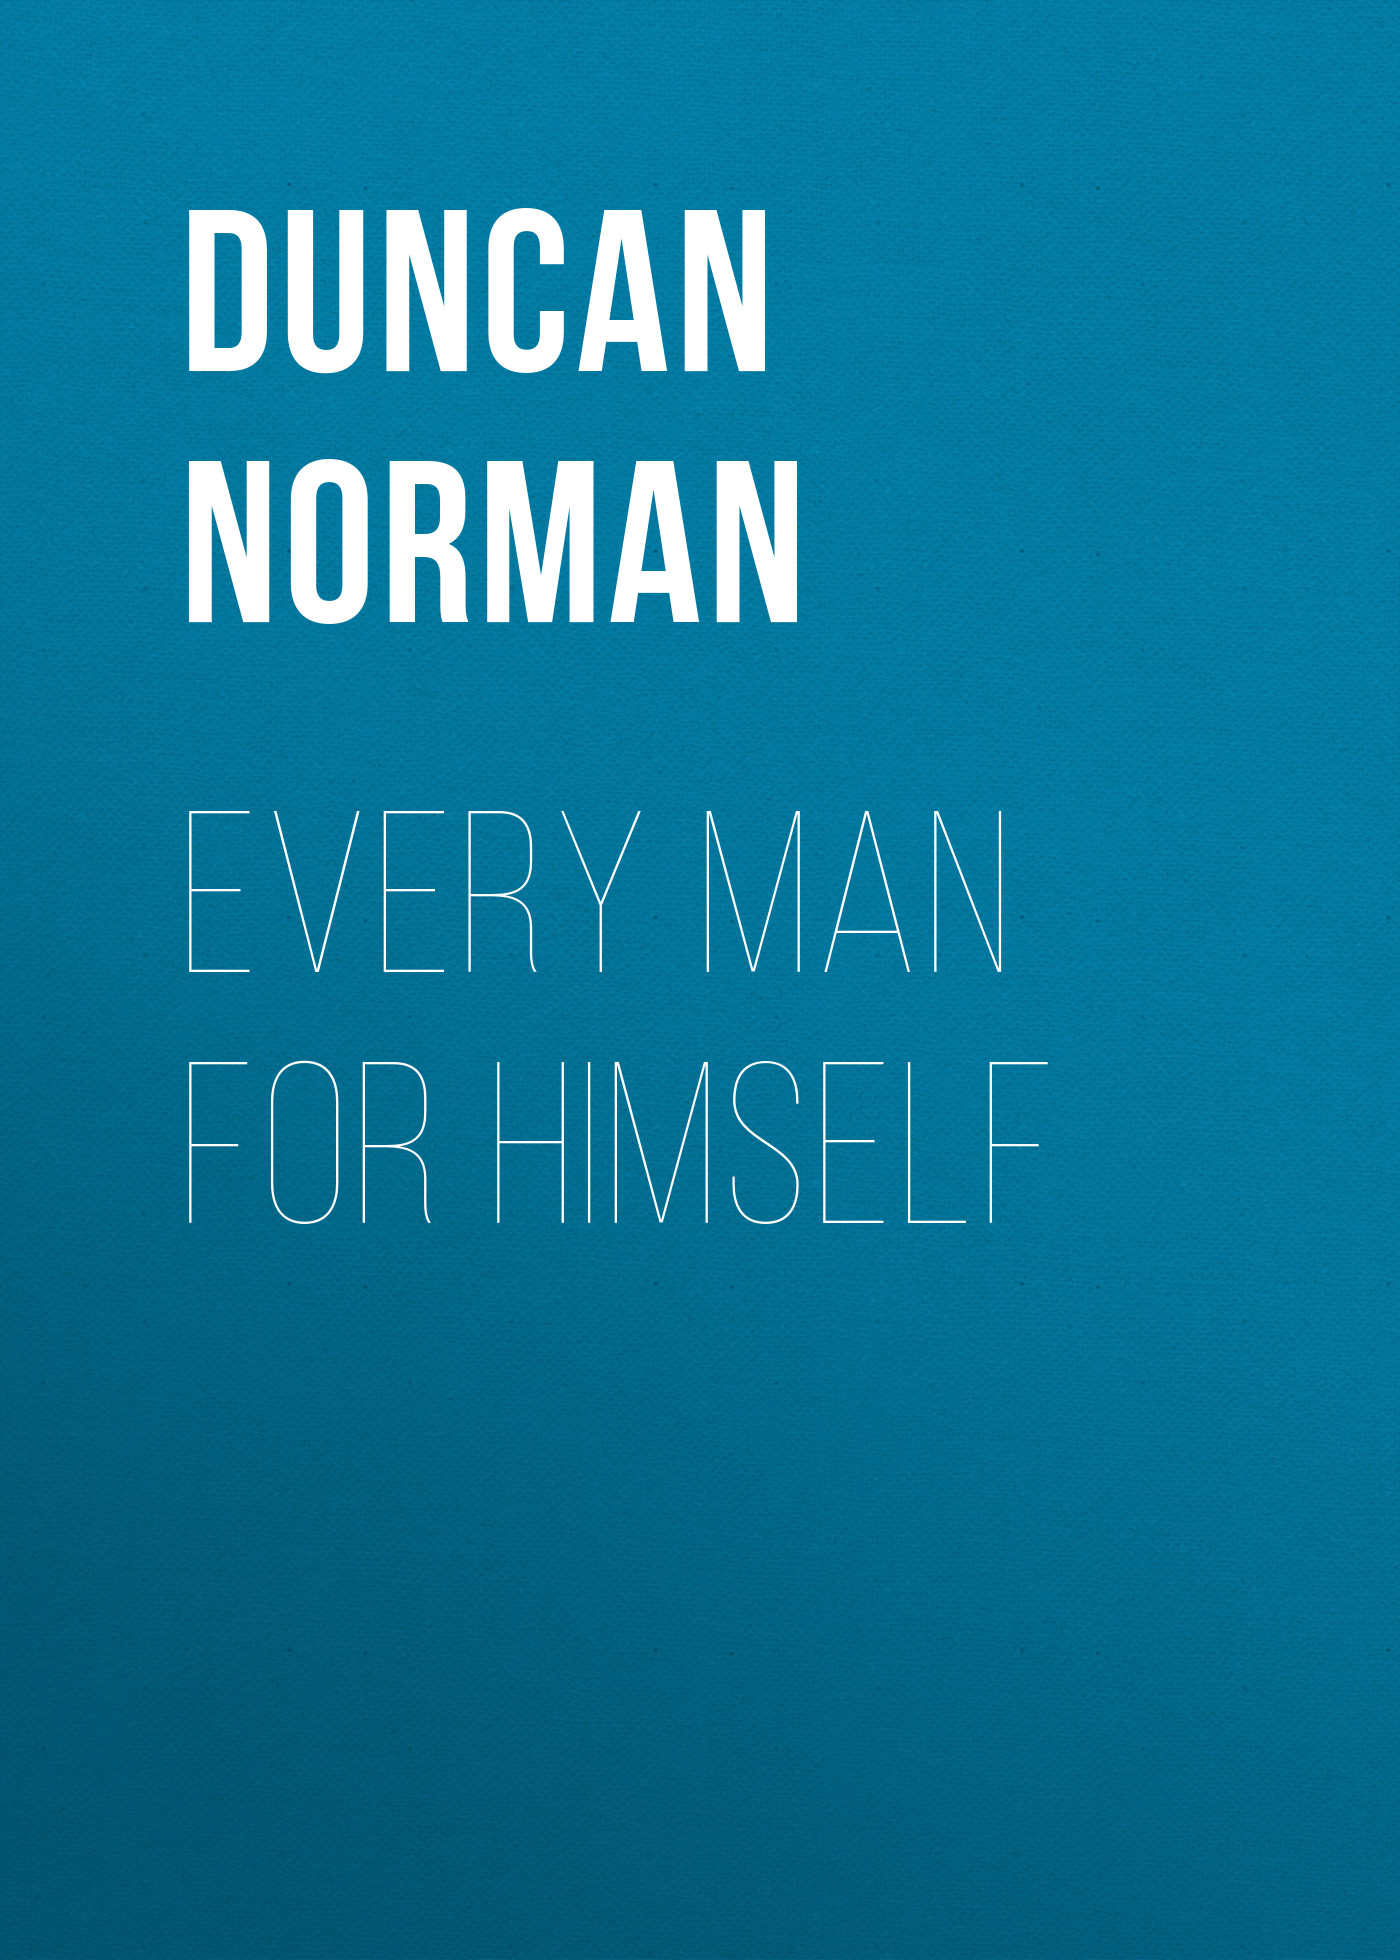 Duncan Norman Every Man for Himself norman ohler patsient a uimastid kolmandas reichis